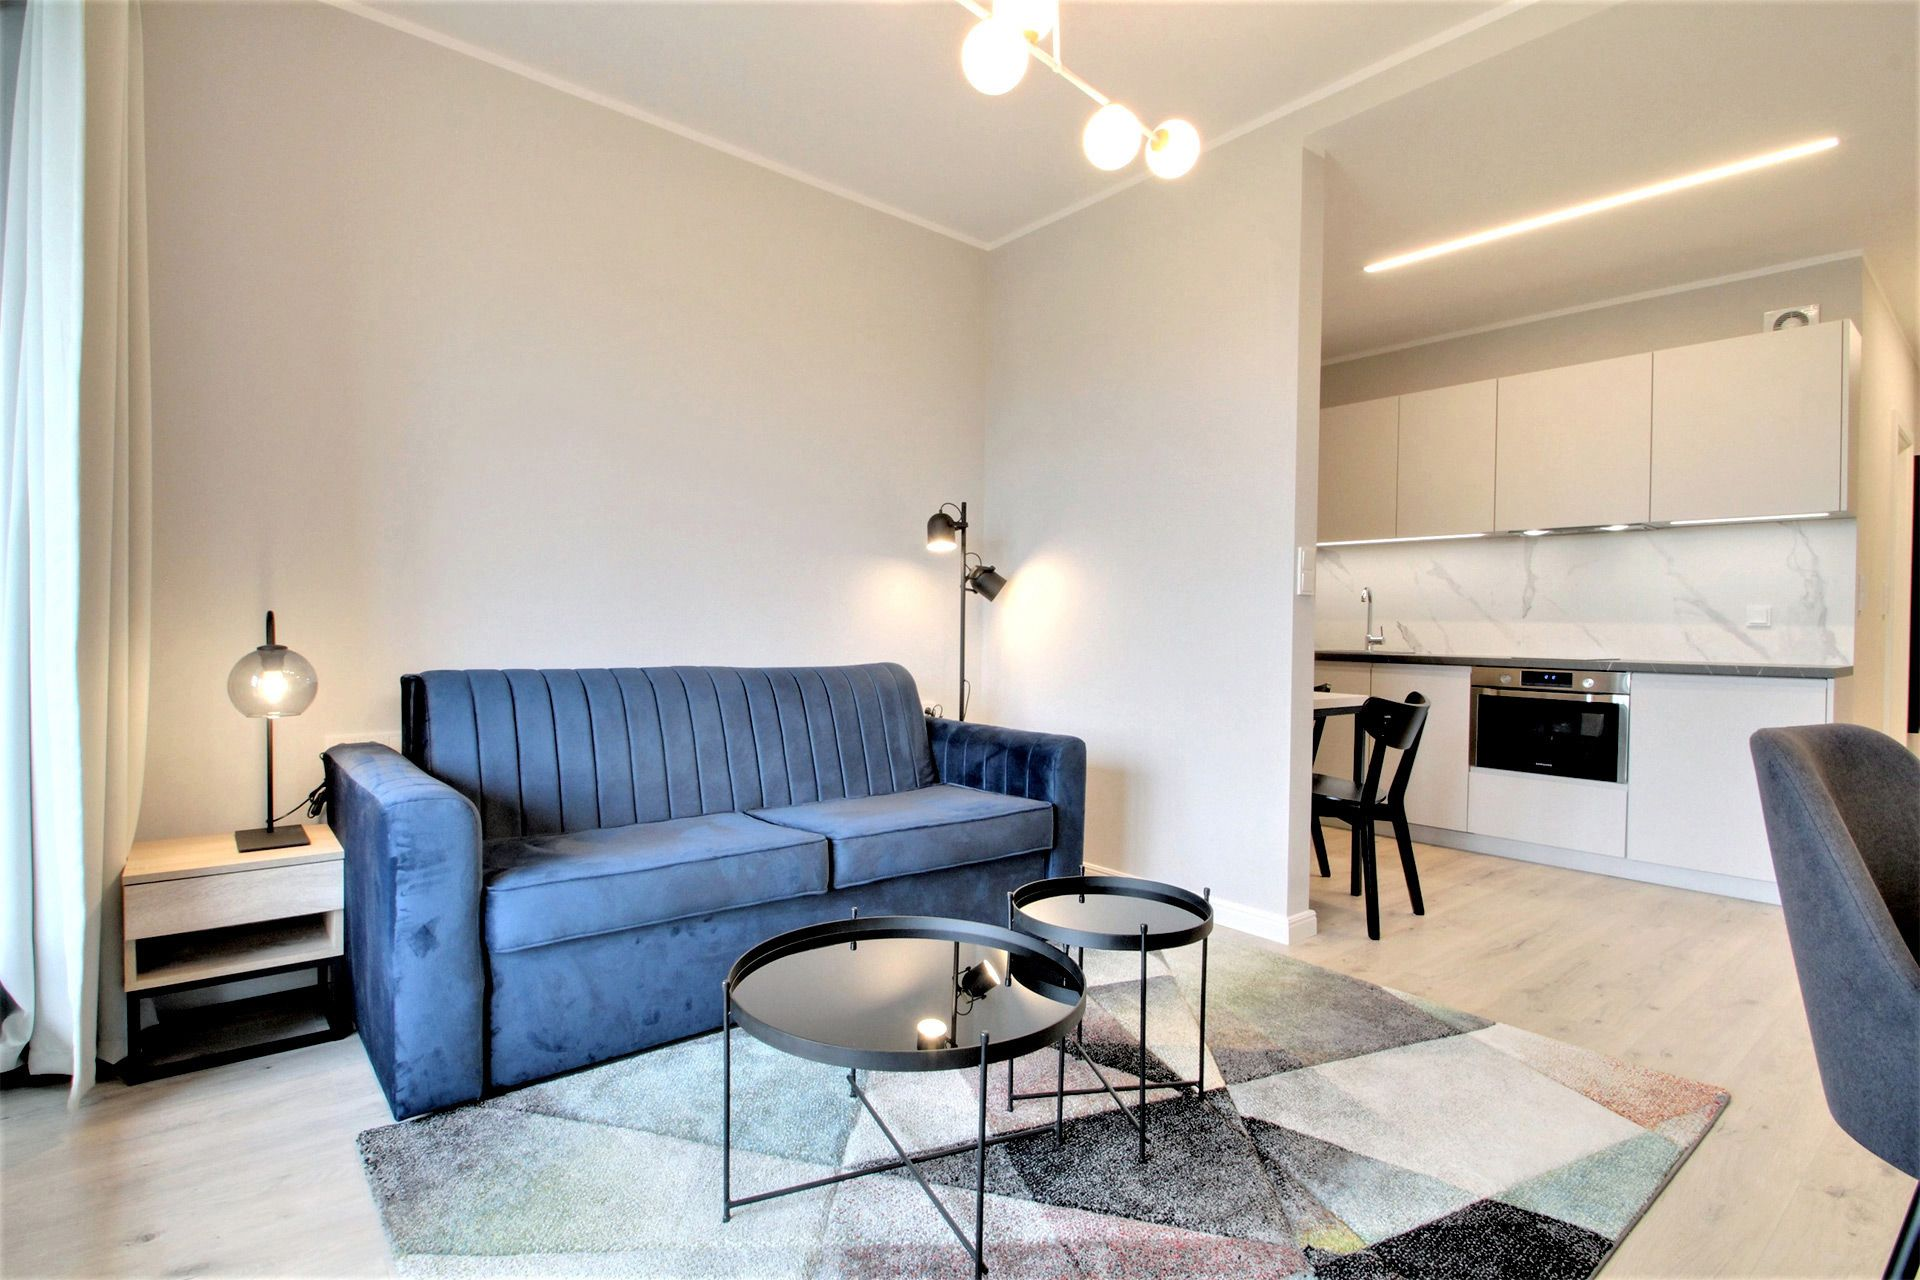 Studio - Medium apartment to rent in Warsaw UPR-A-049-2